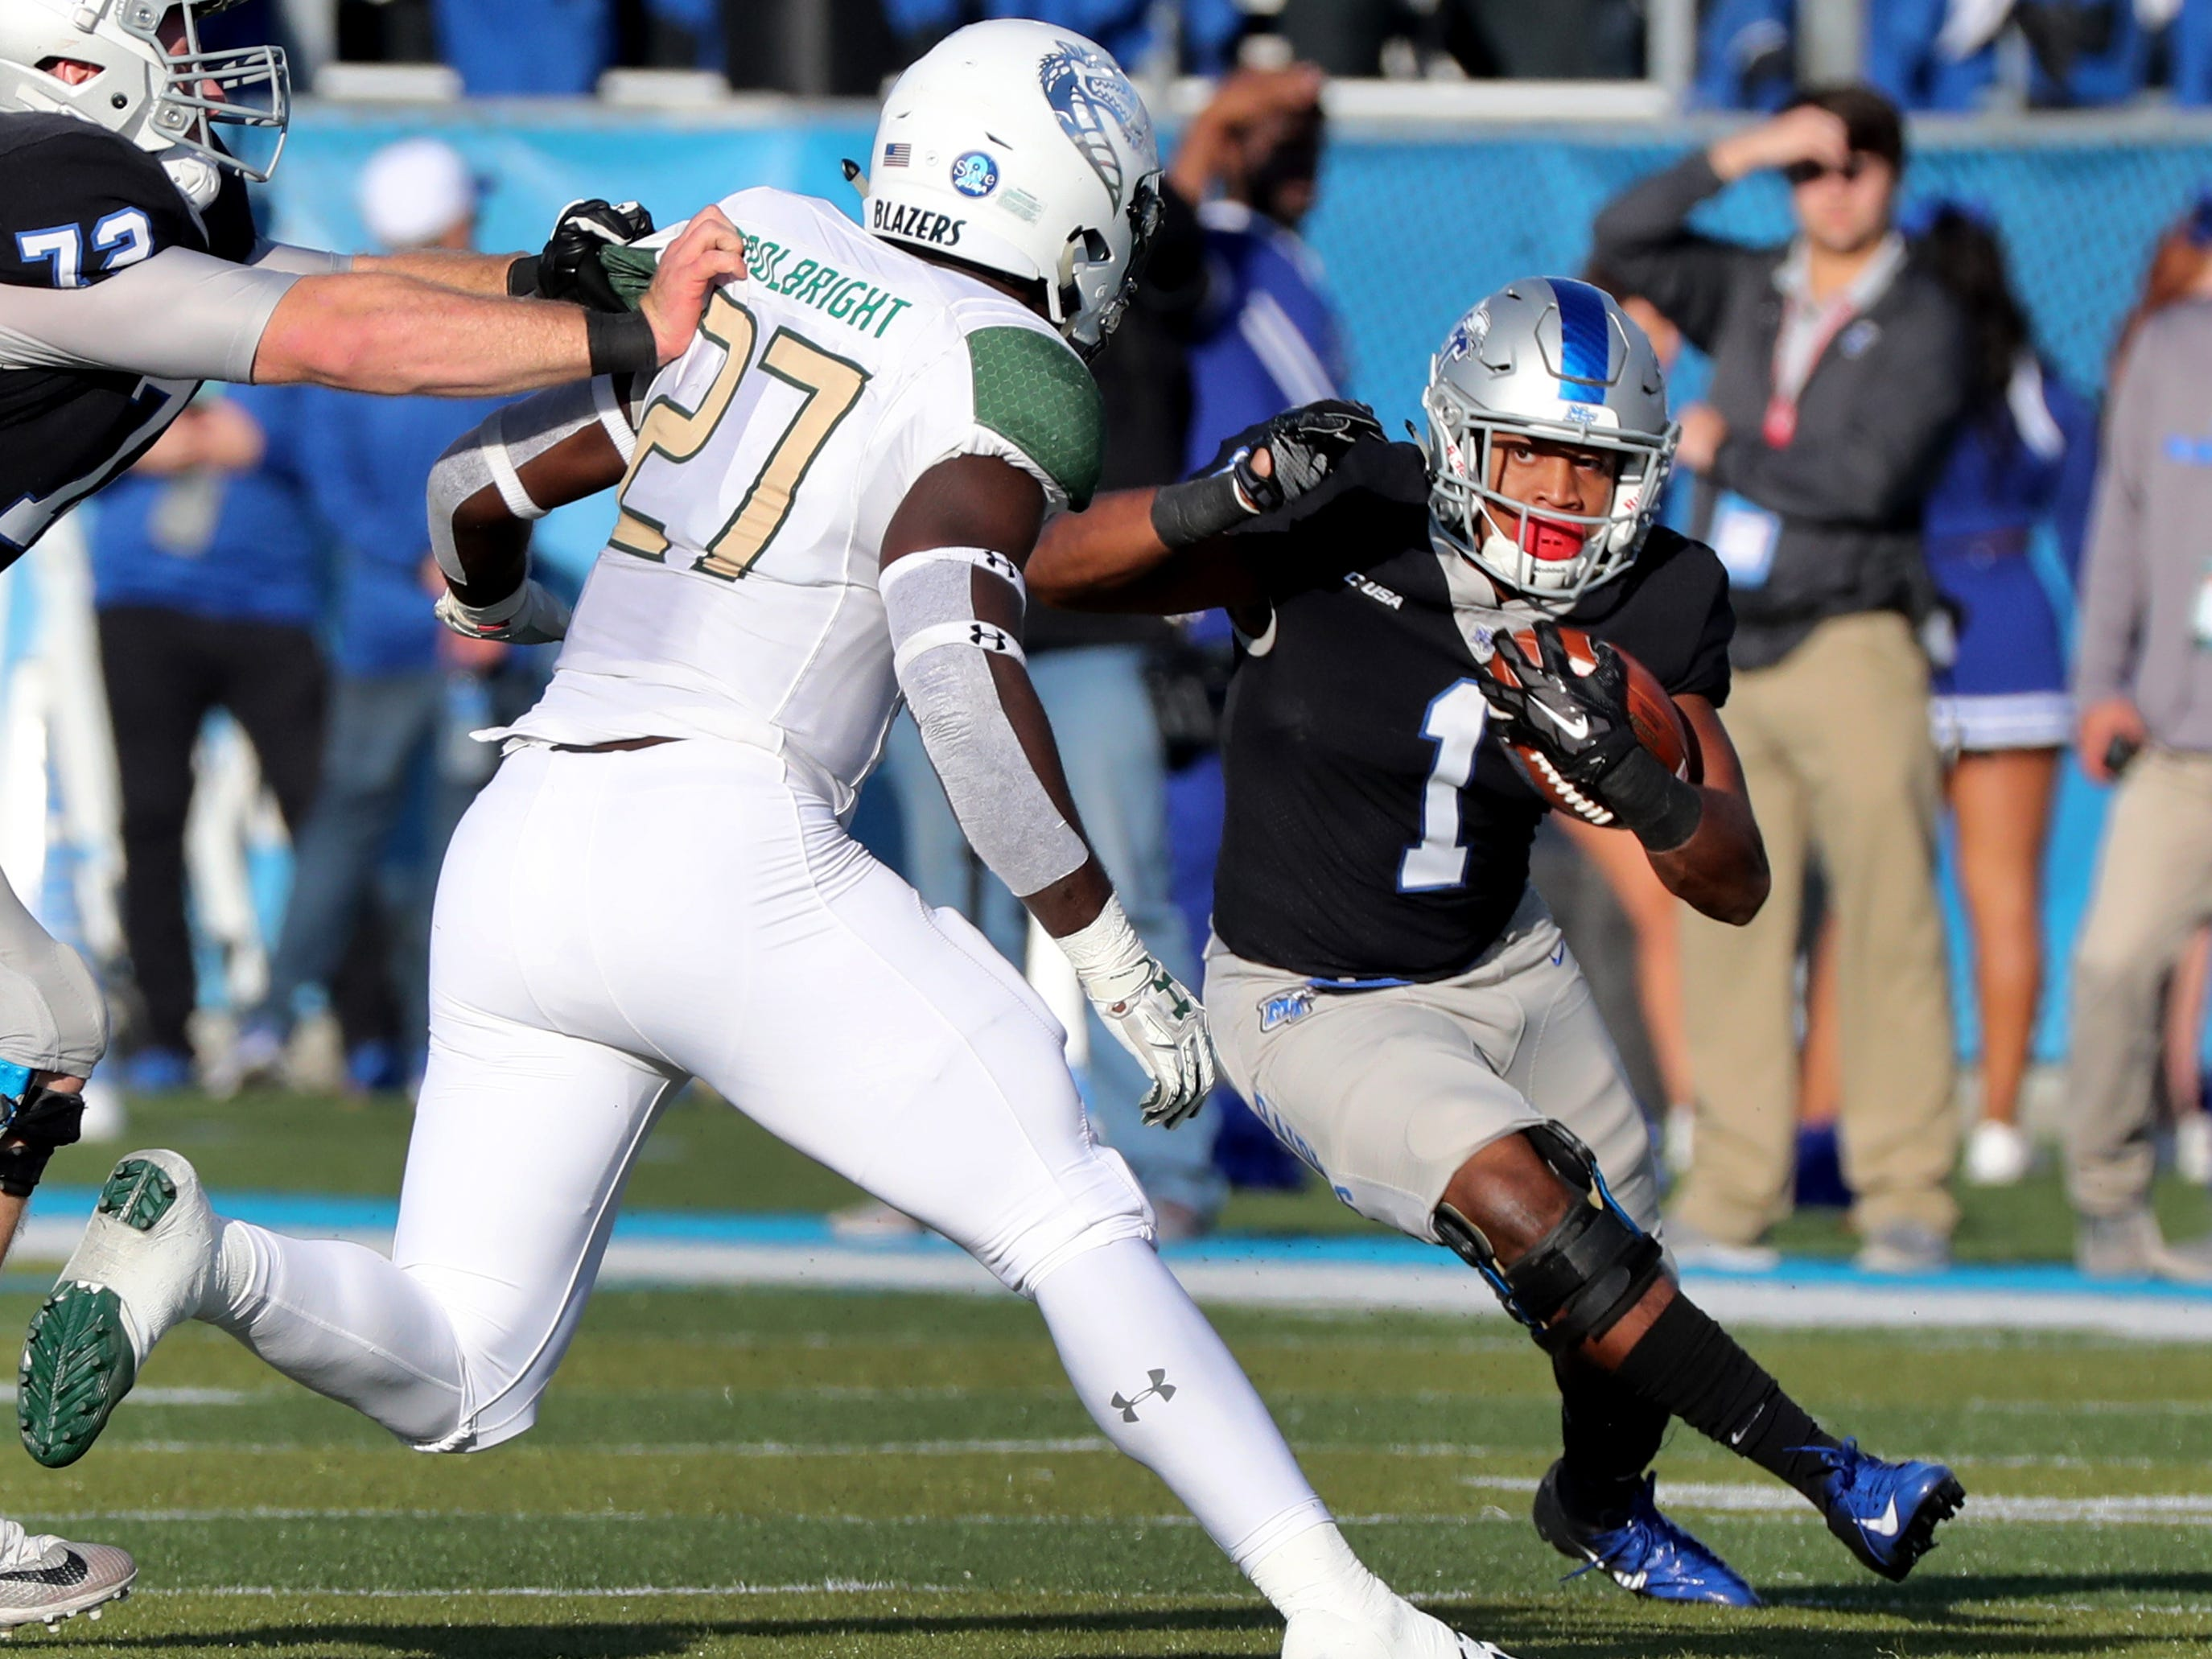 MTSU's Terelle West (1) runs the ball as UAB's Chris Woolbright (27) moves in for a tackle during the game at MTSU on Saturday, Nov. 24, 2018.